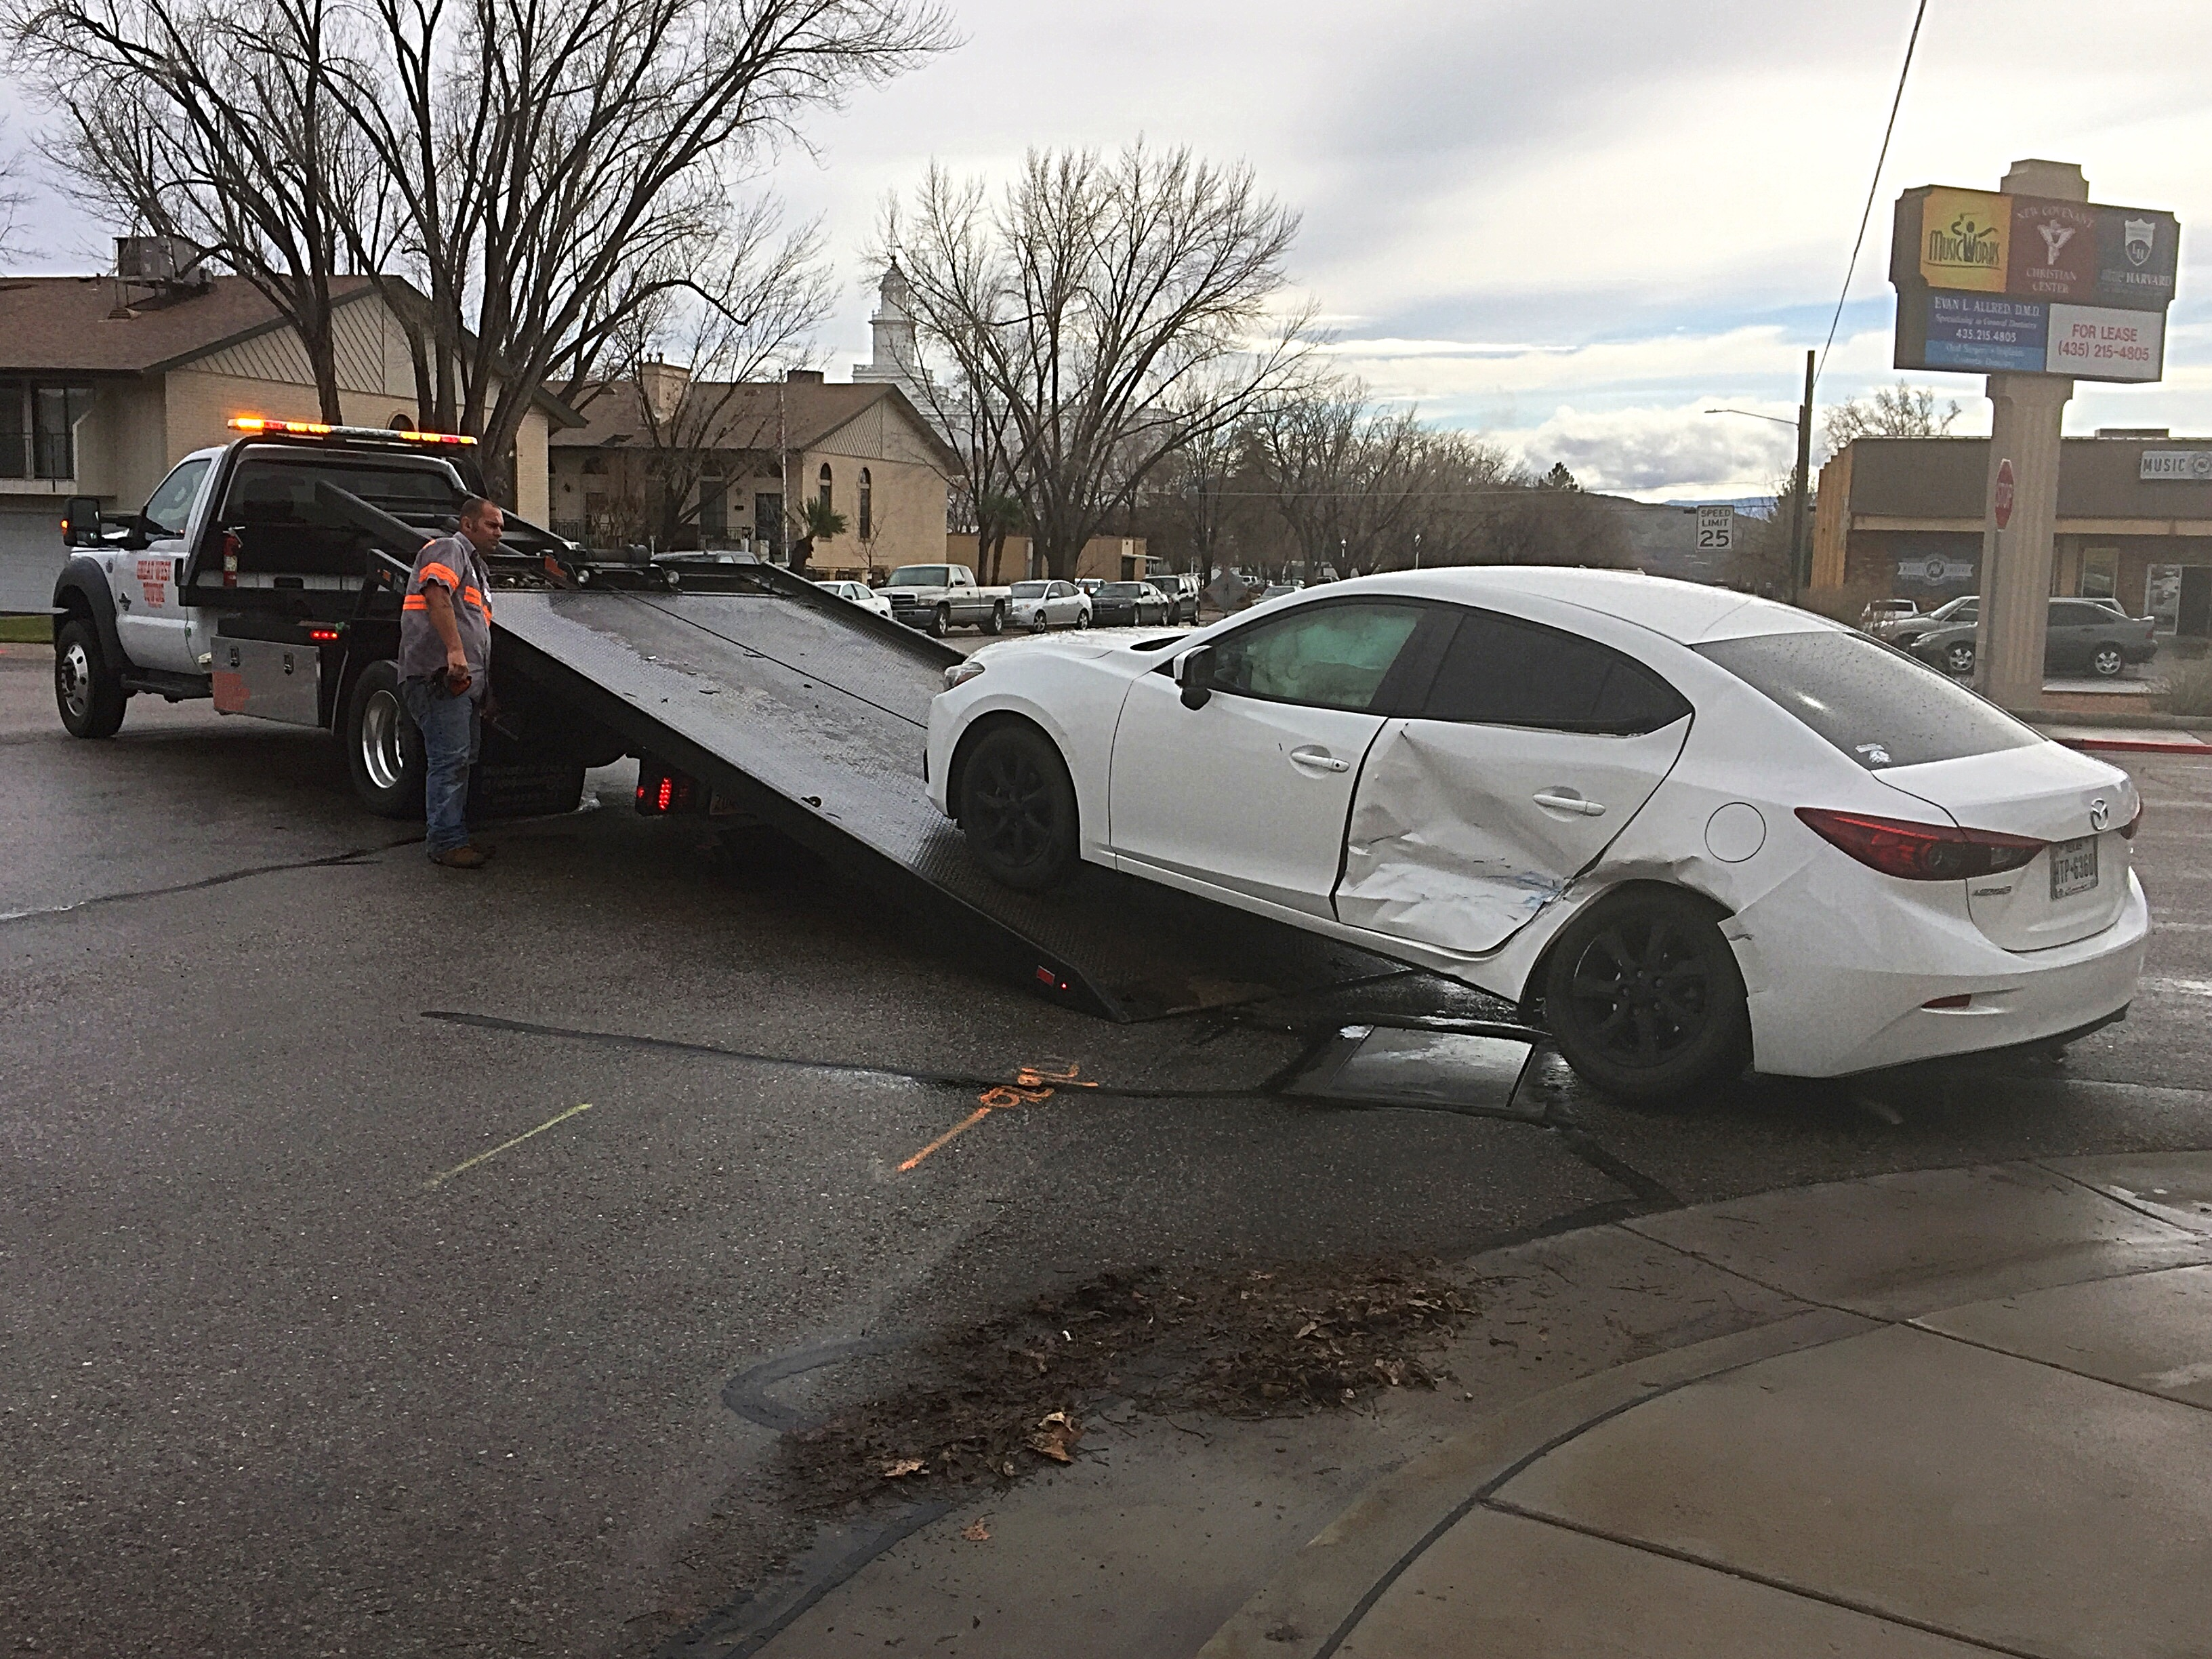 after photo vehicle running following joseph away by stop in is sign hurricane triggers crash utah jcw towed on street mazda a state george witham march archive driver unlicensed news dsc st